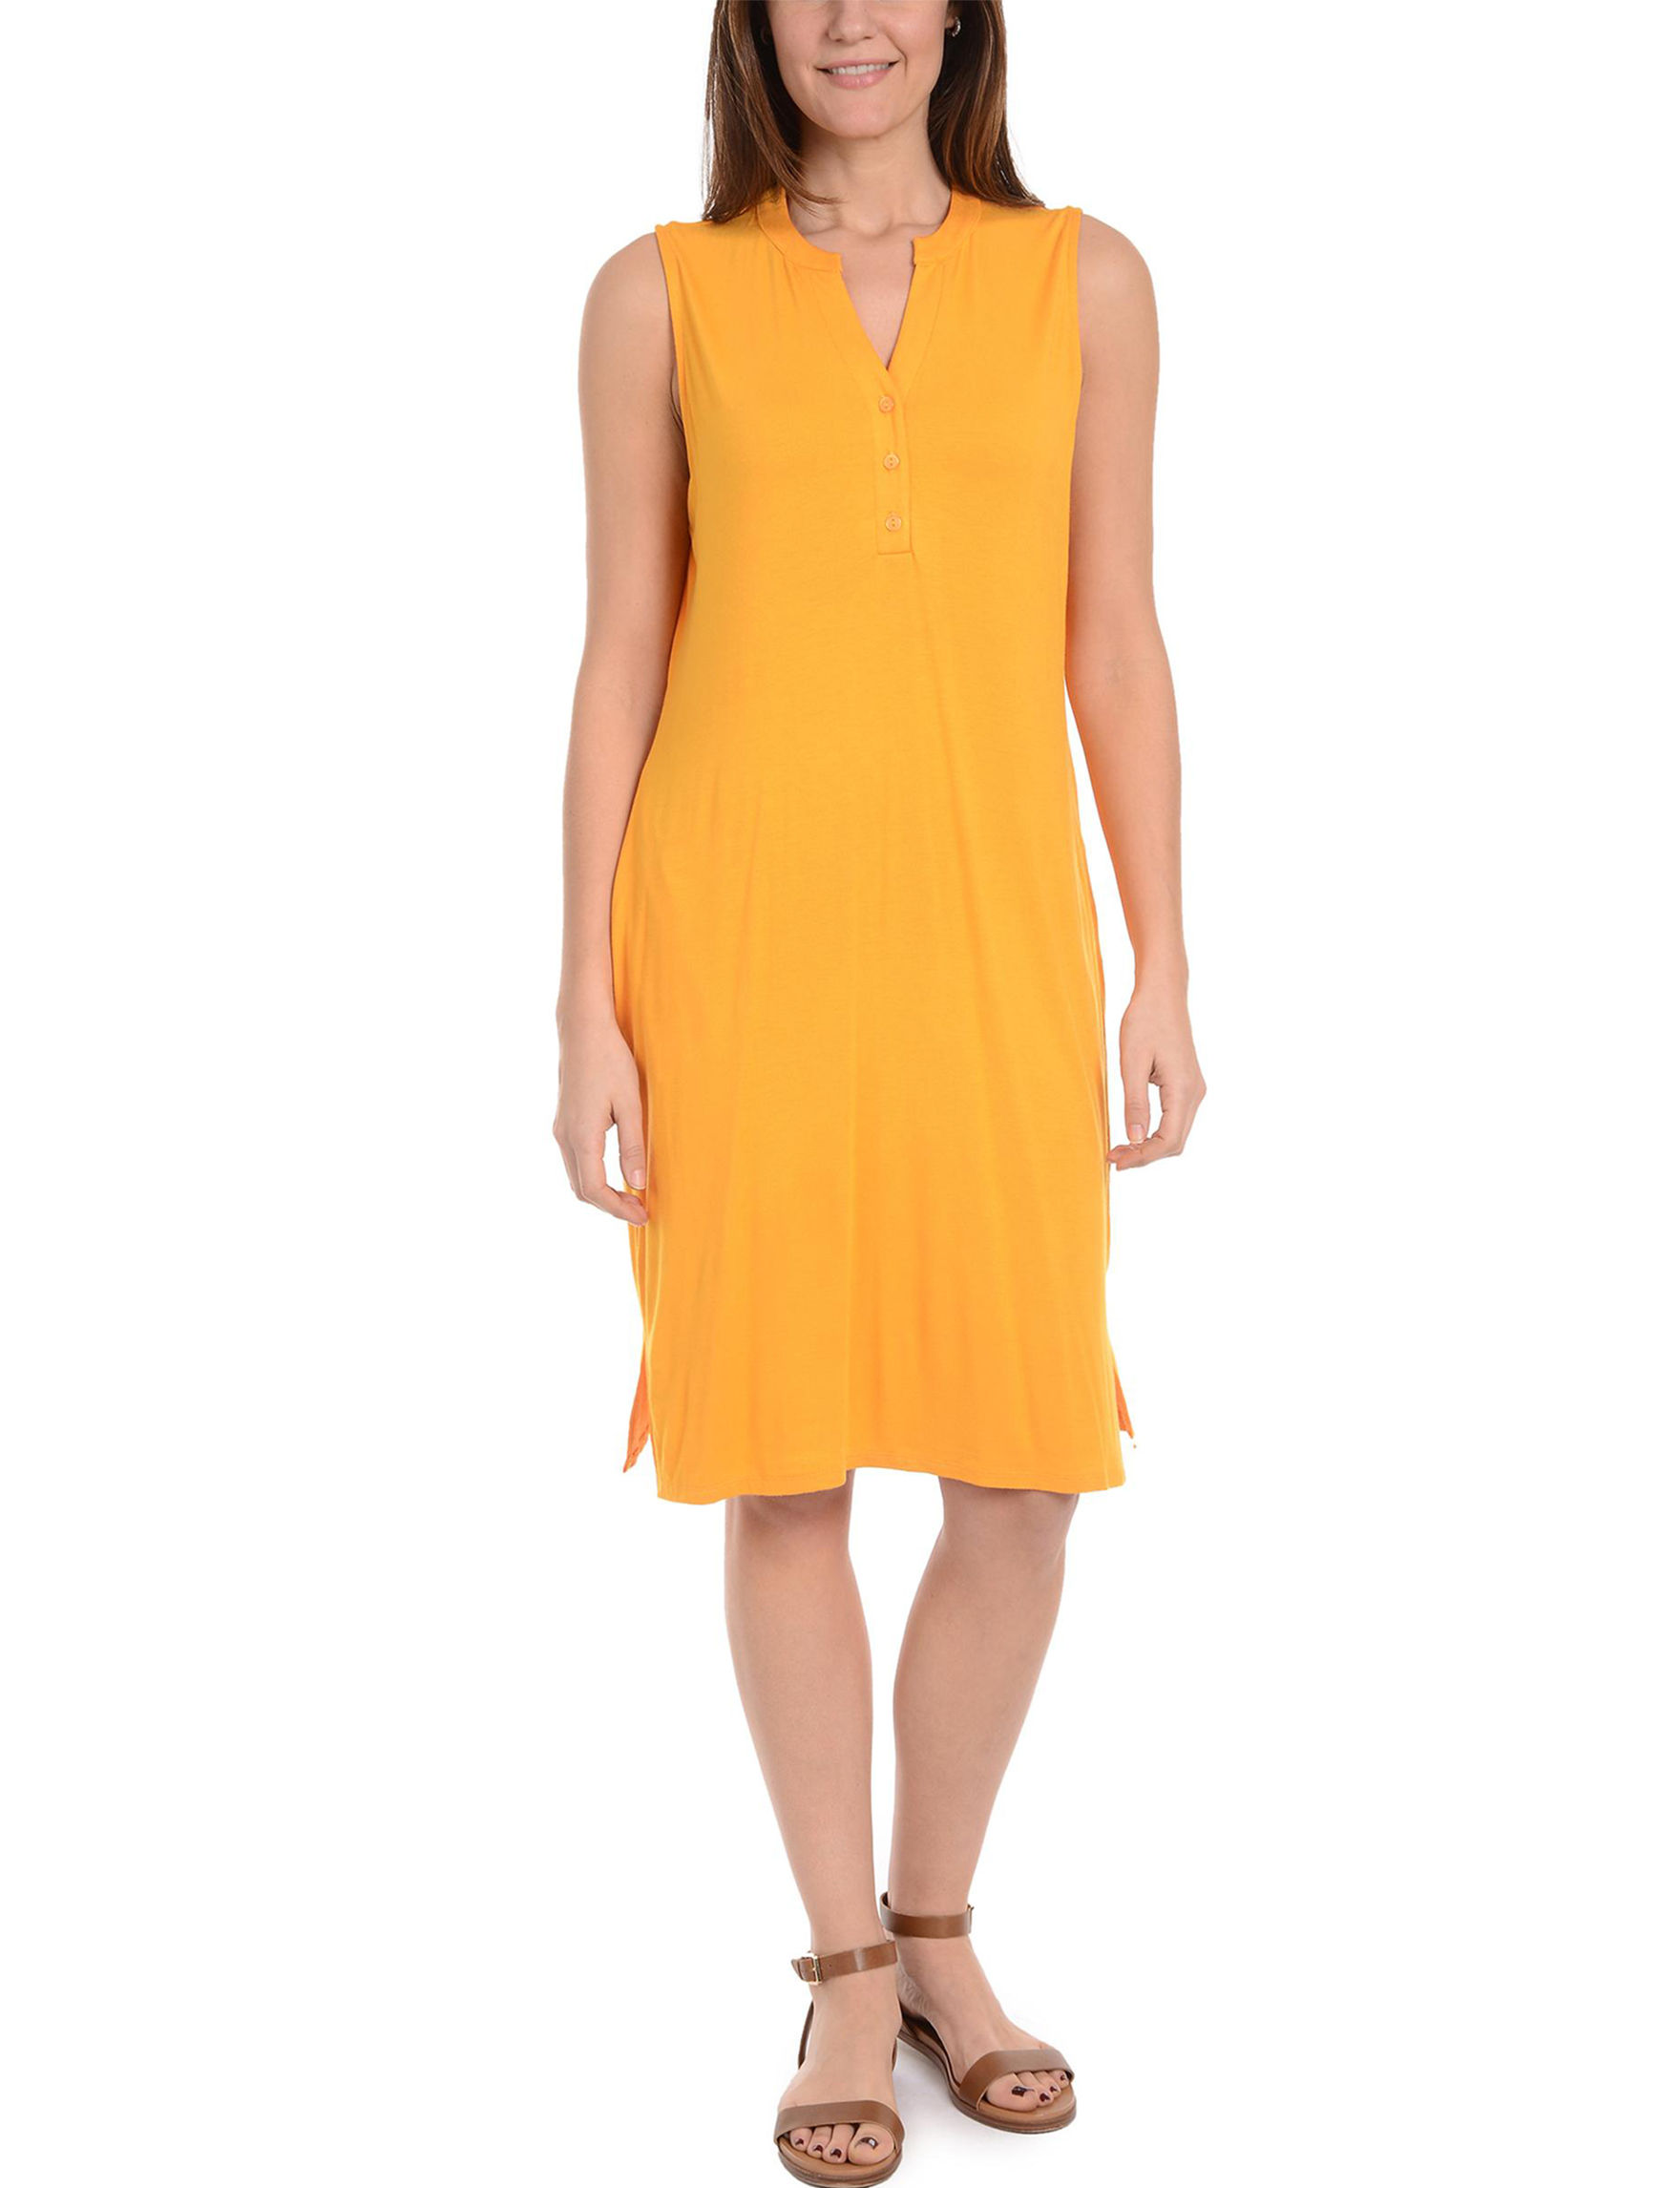 NY Collection Yellow Everyday & Casual Shirt Dresses